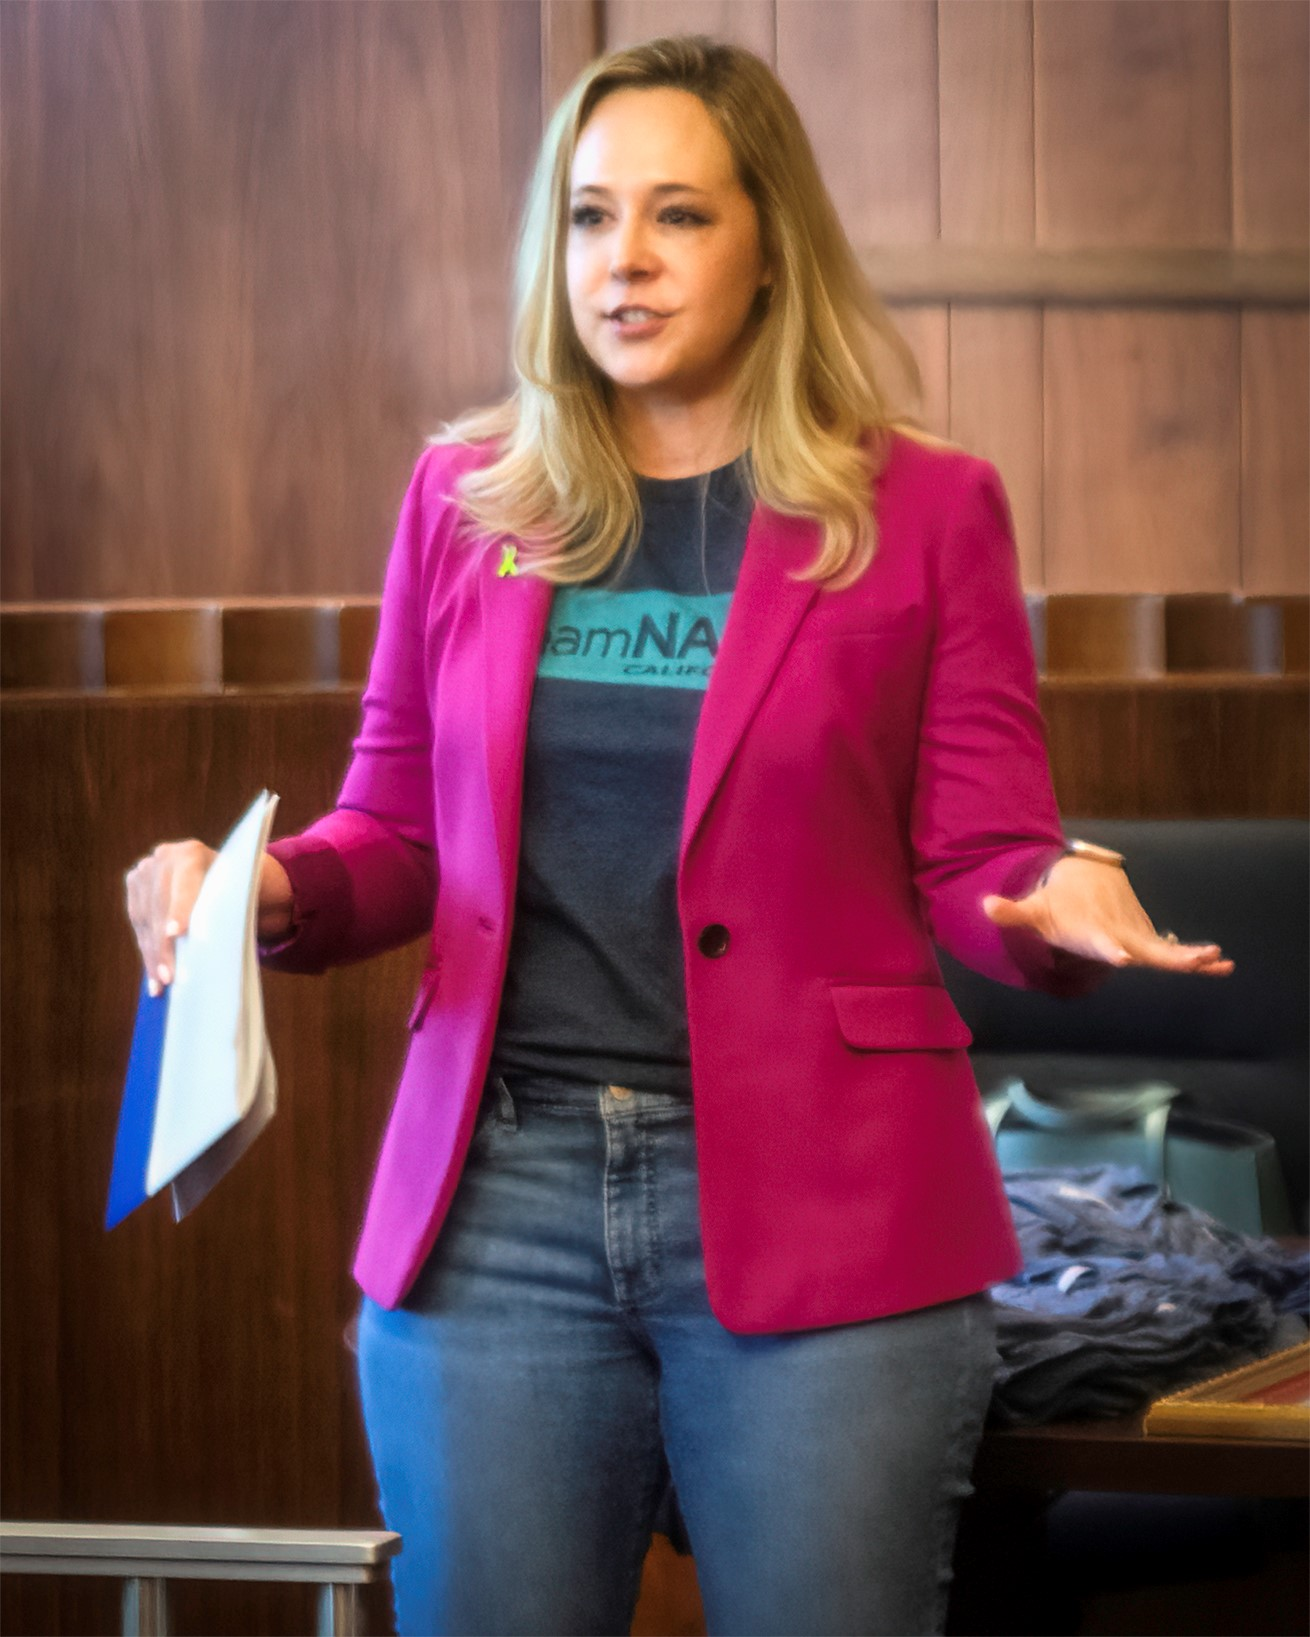 NAMI California CEO Jessica Cruz welcomes attendees during Wednesday's advocacy event